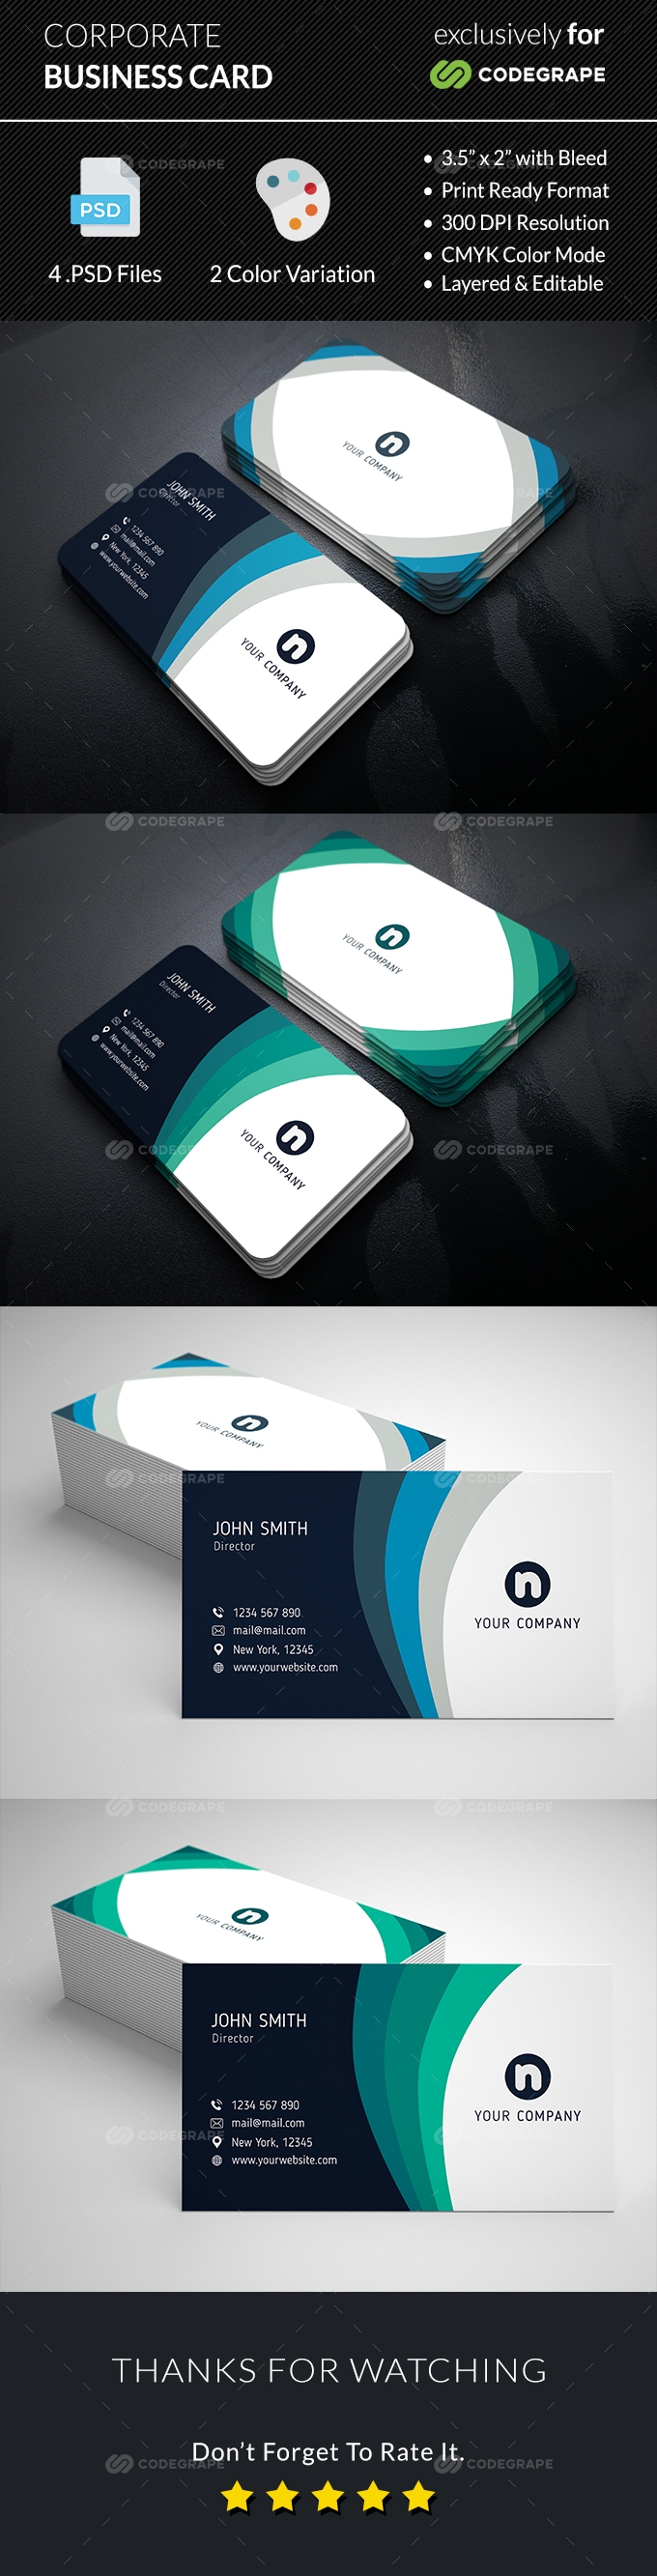 Corporate Business Card v.4